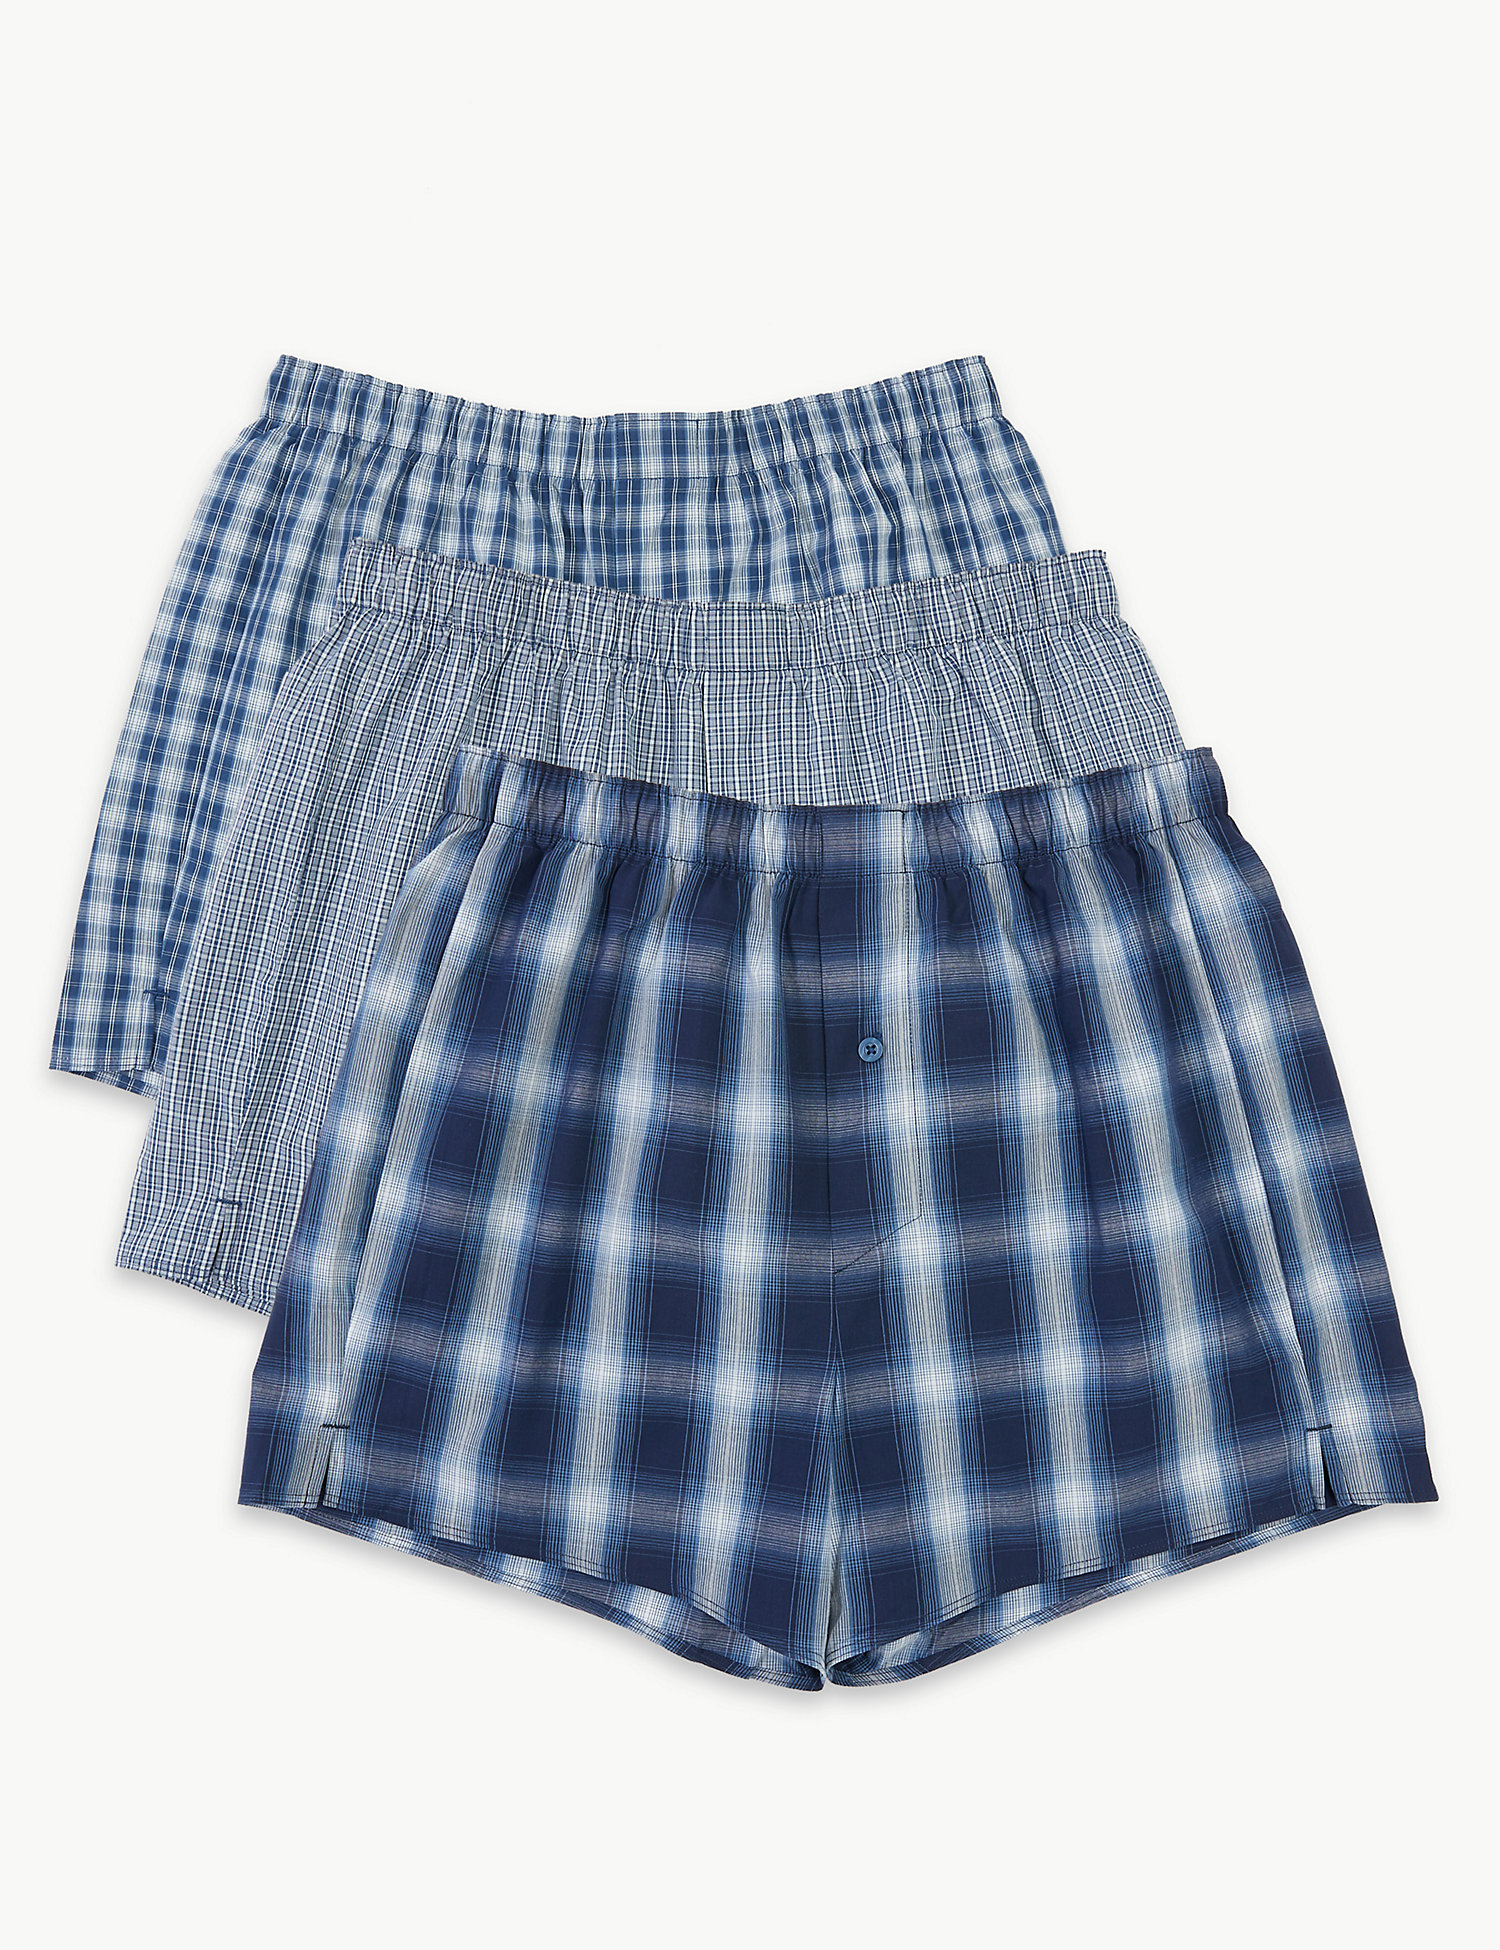 3 Pack Ombre Checked Boxers